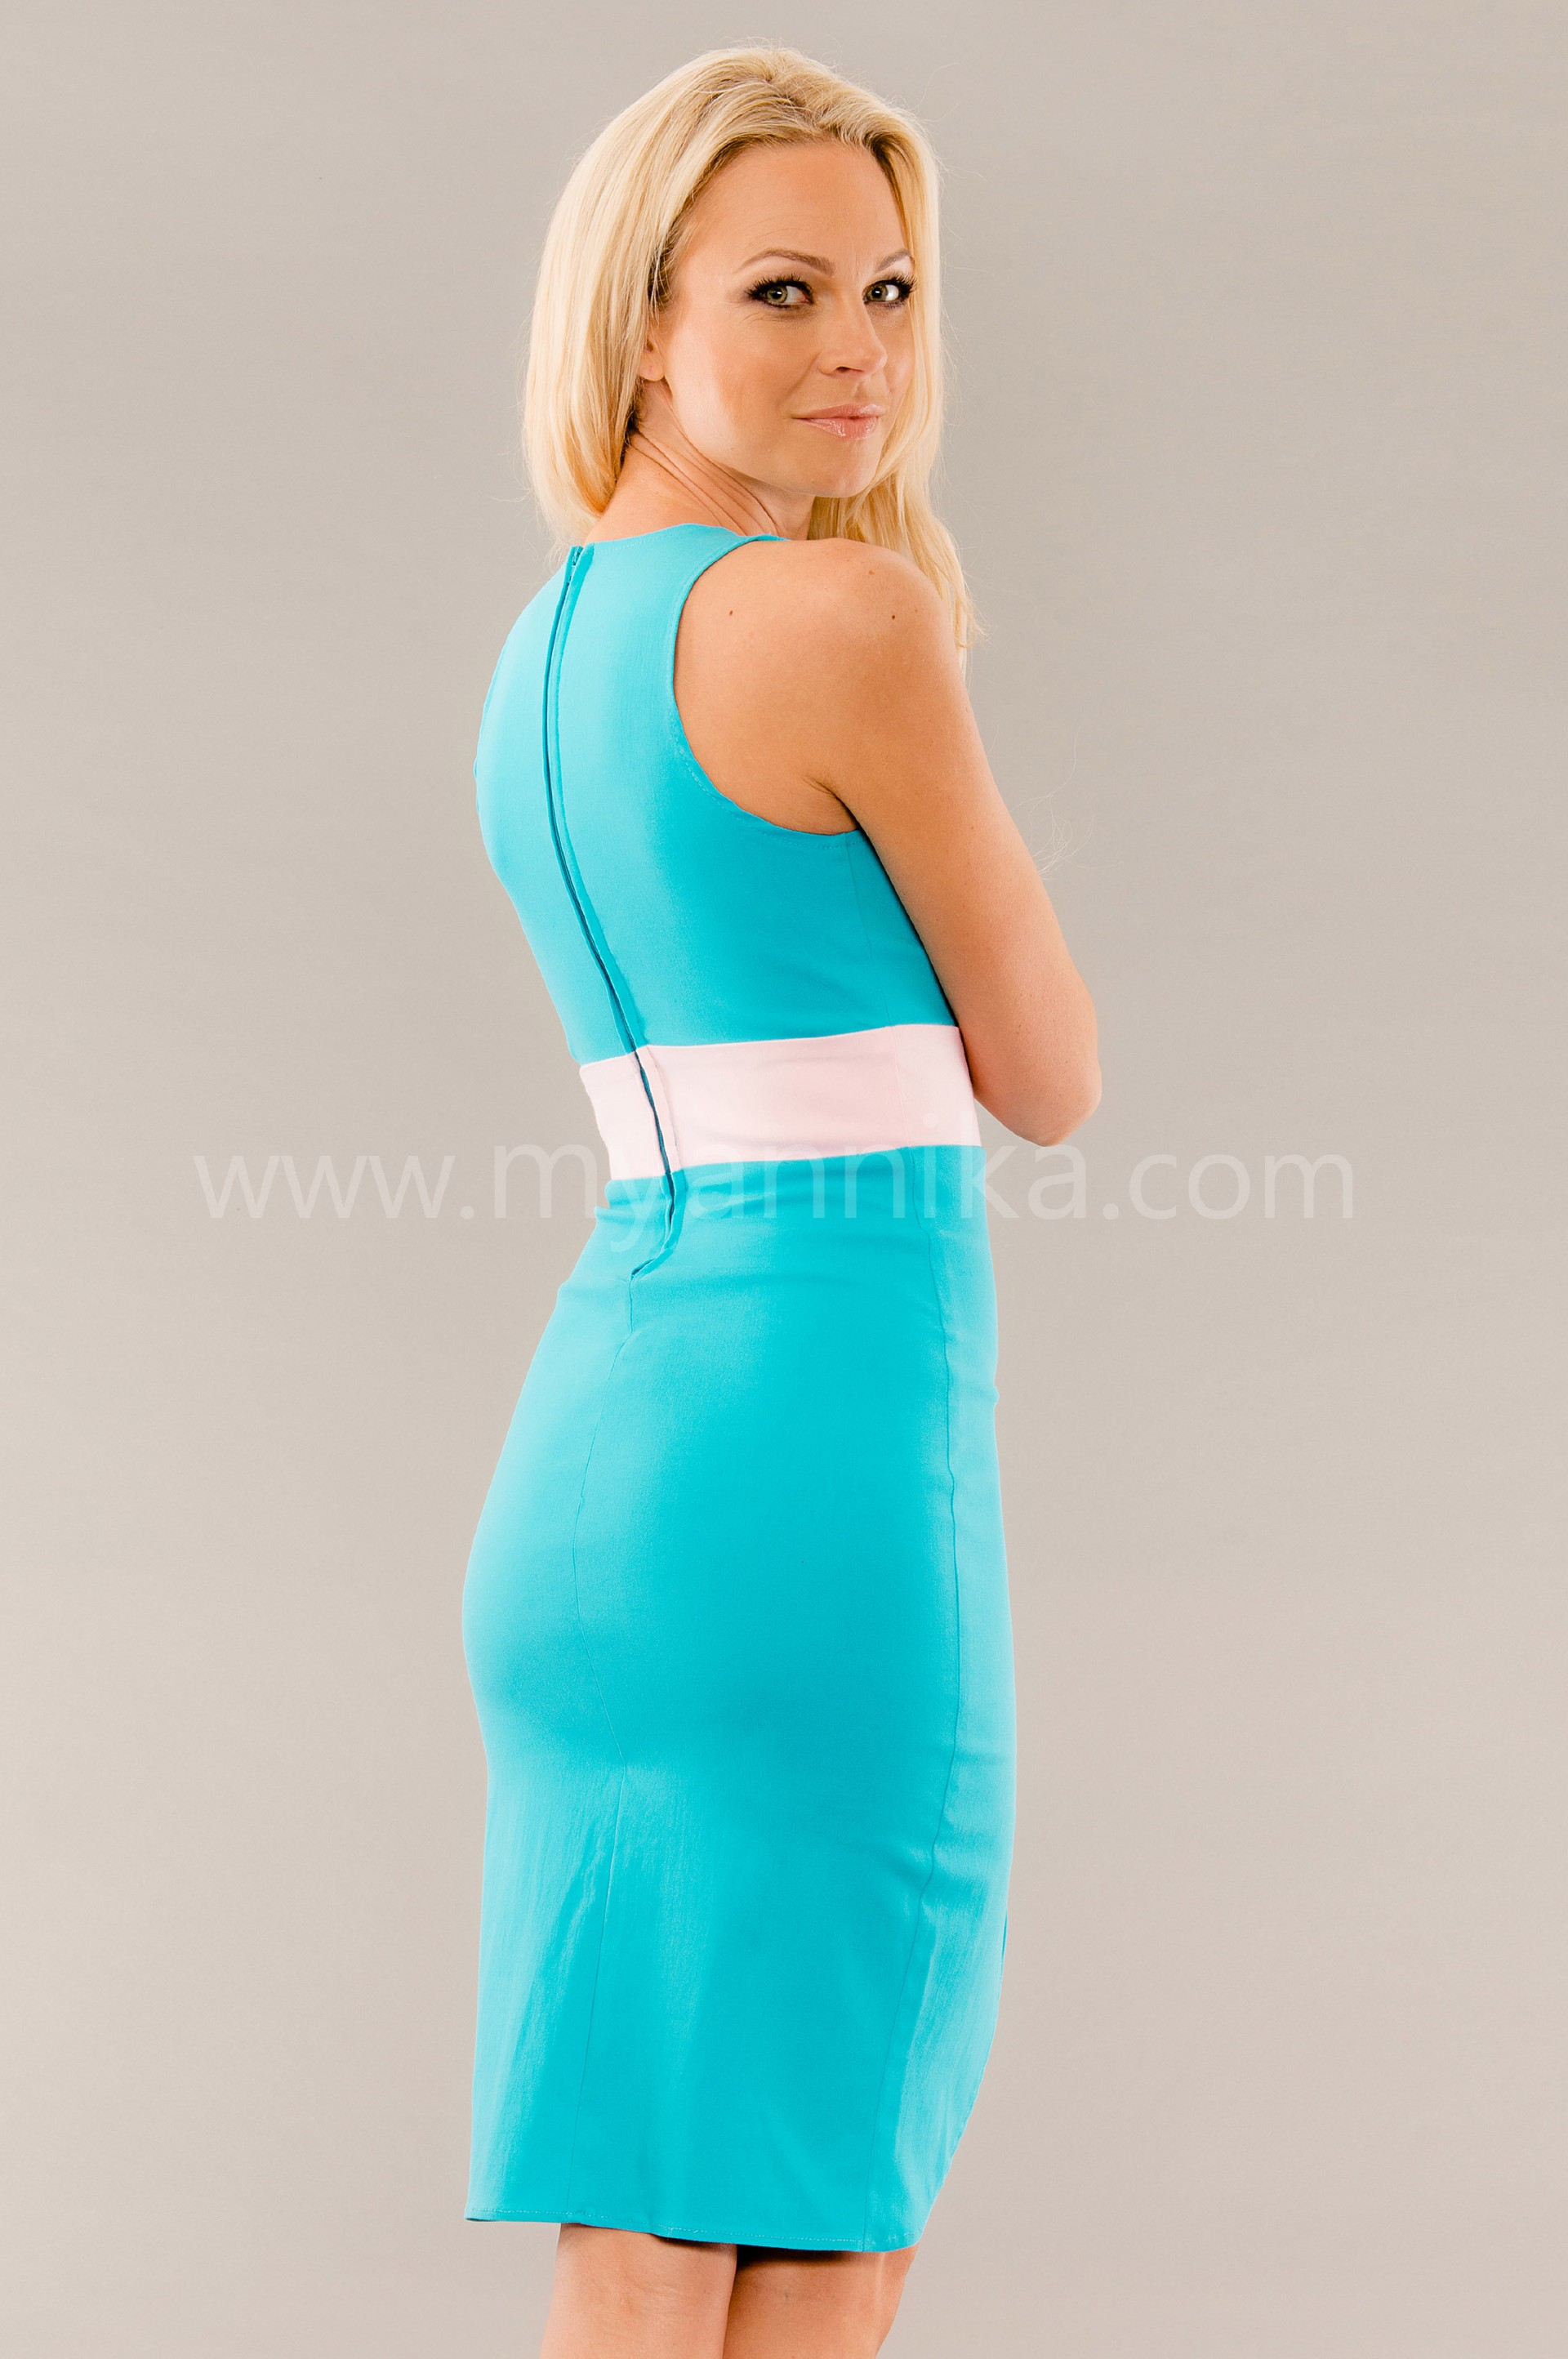 Turquoise Pencil Dress with Front Slit Annika - Bandage Dresses ...